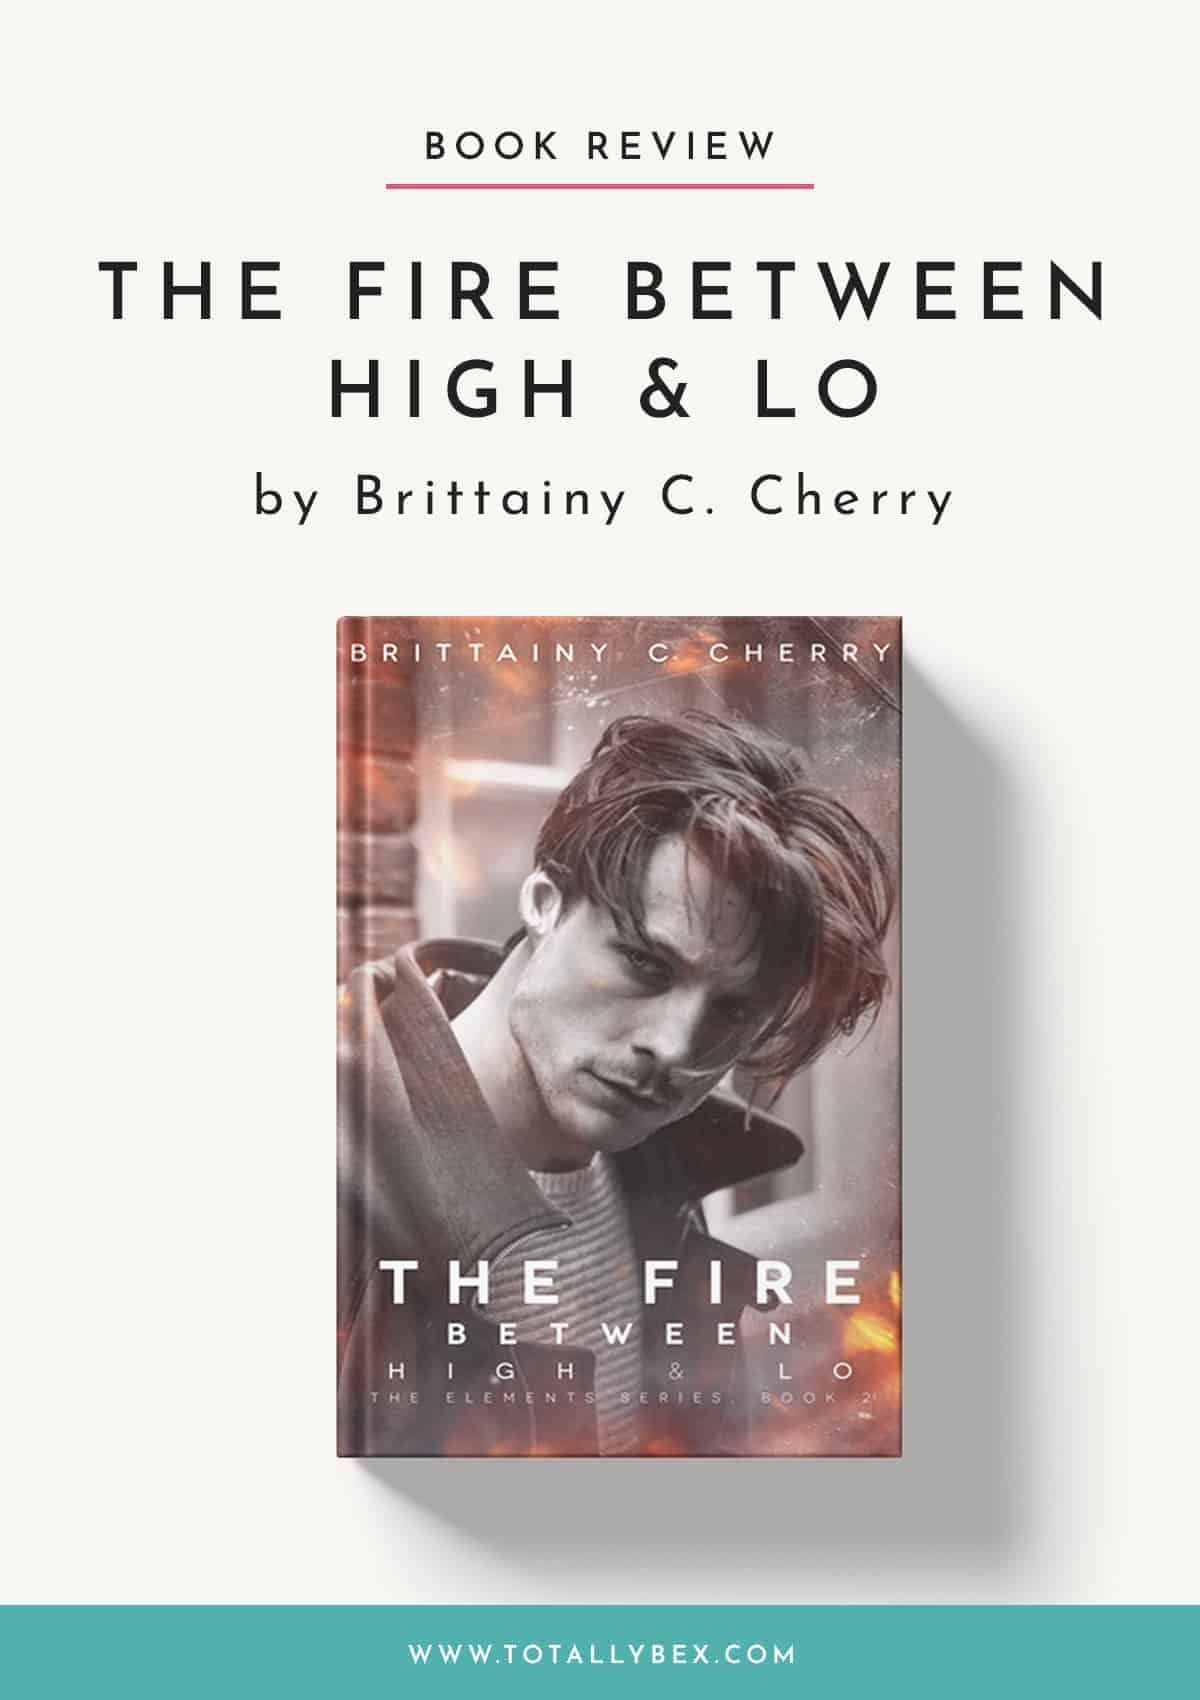 The Fire Between High & Lo by Brittainy C Cherry-Book Review